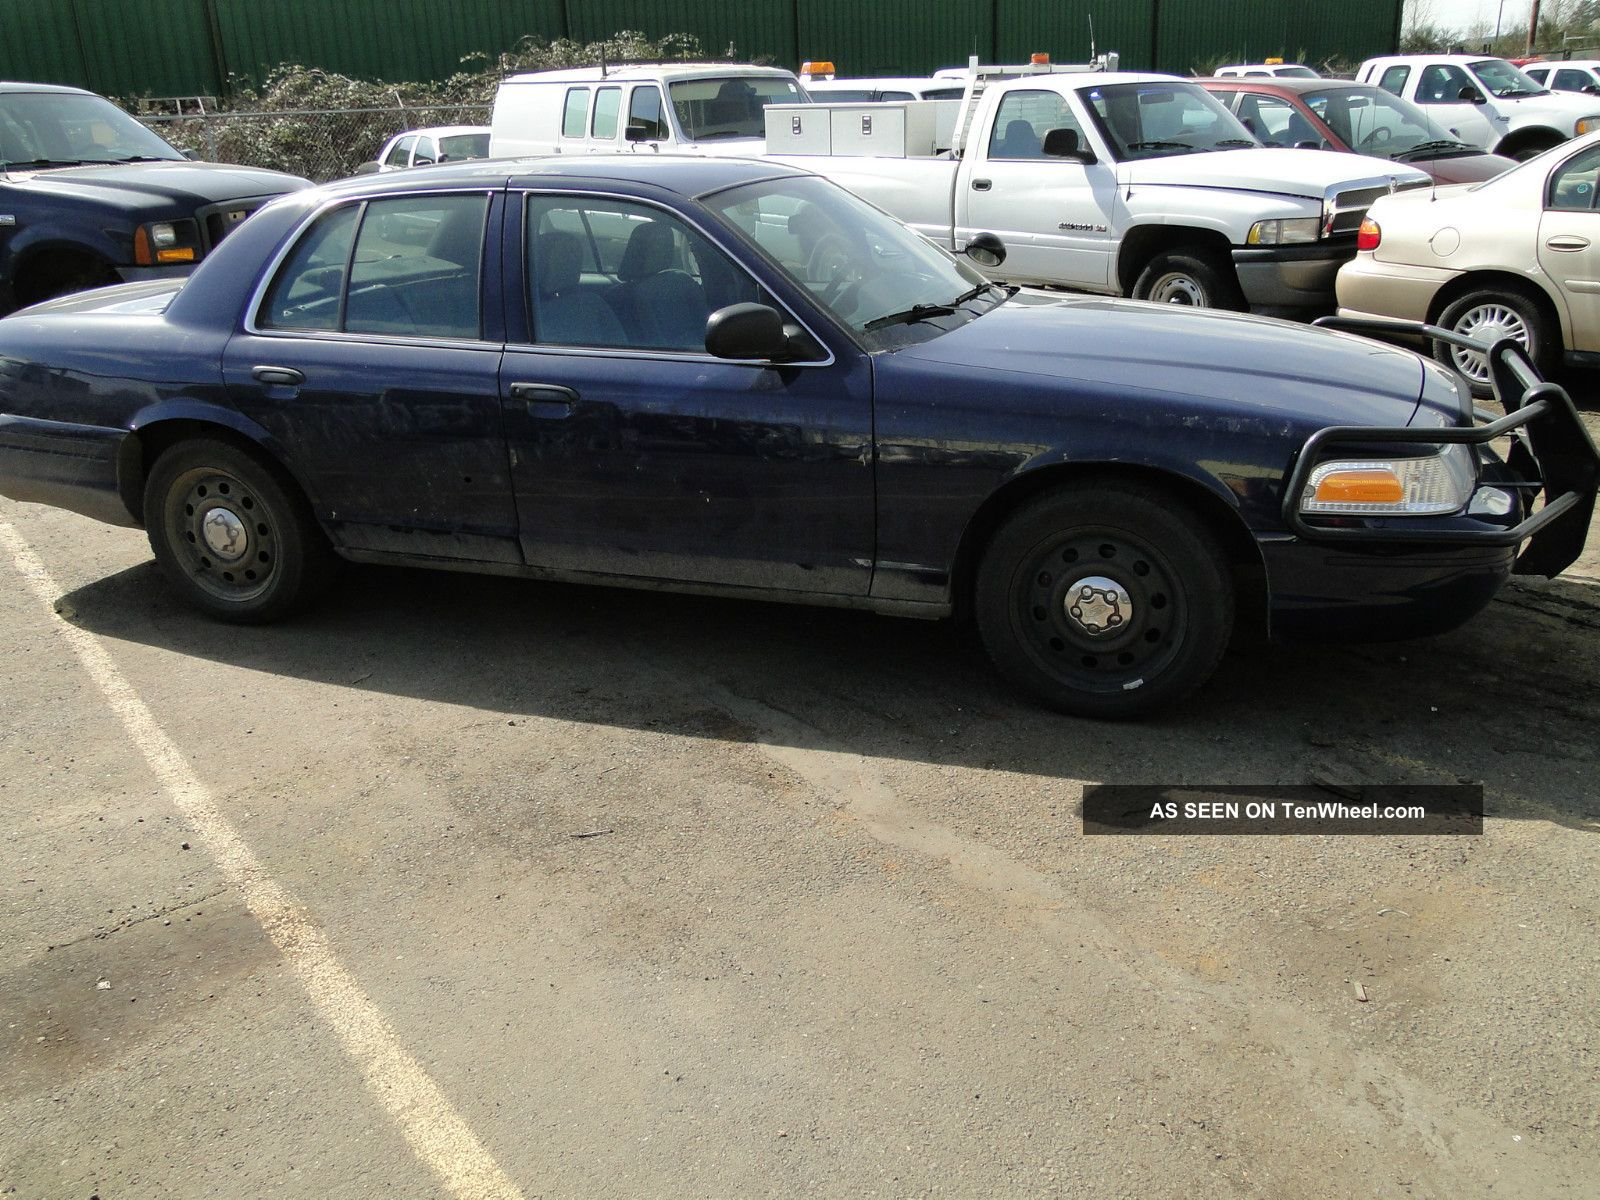 2008 Ford Crown Victoria Police Interceptor - Retired Police Vehicle Crown Victoria photo